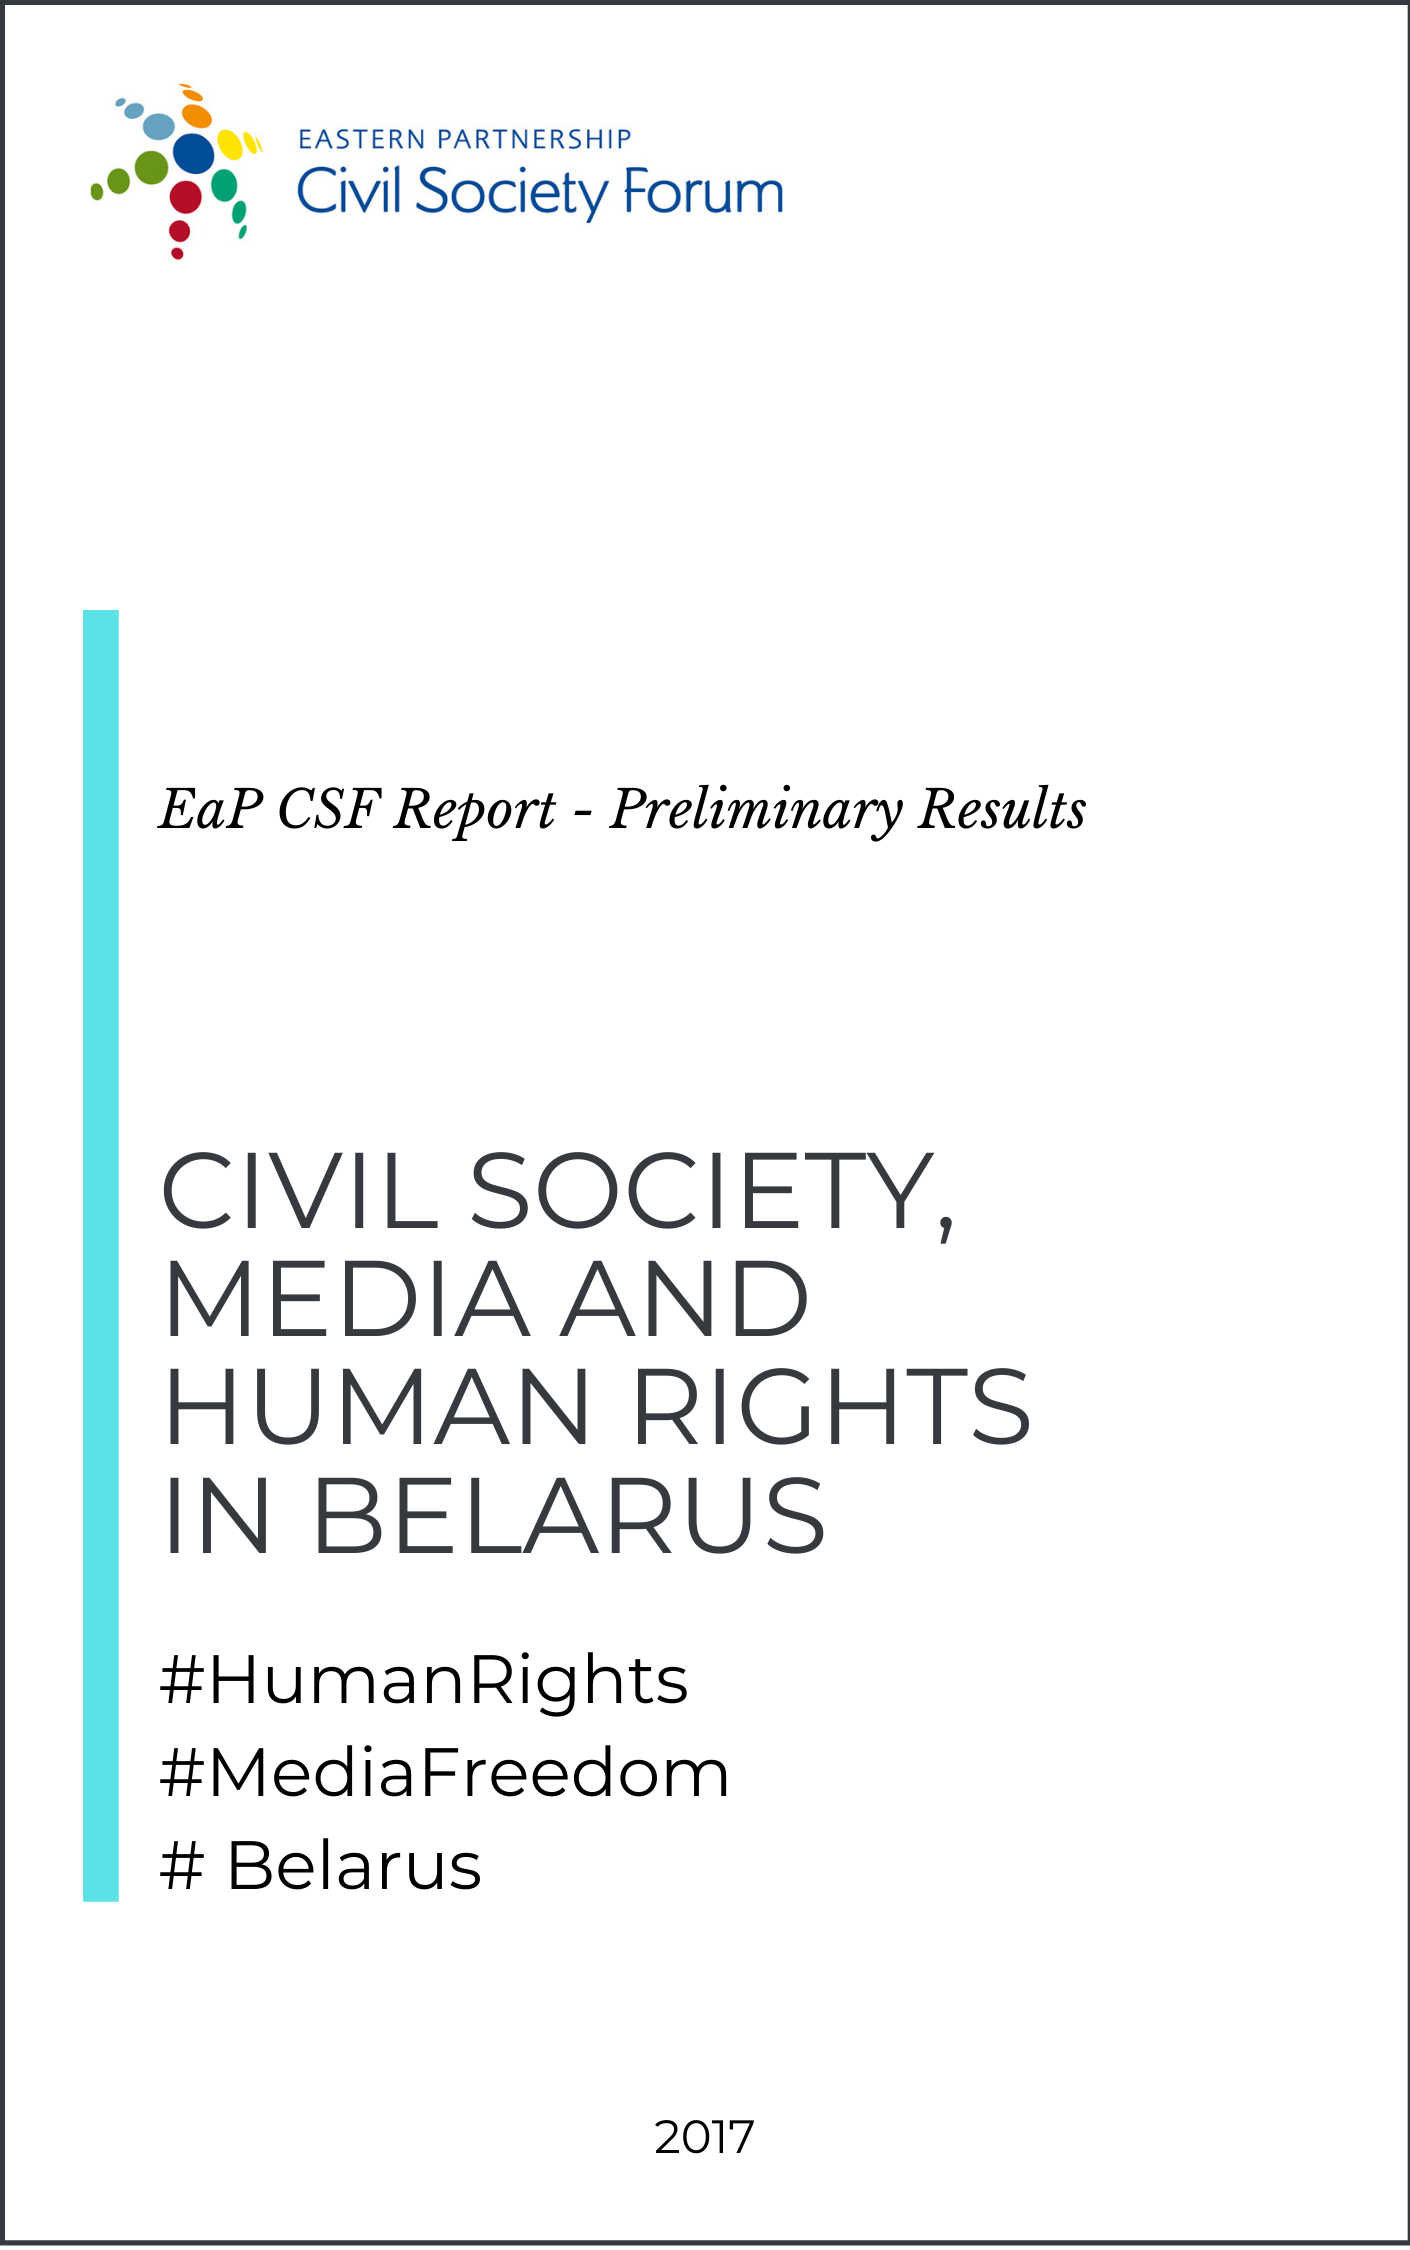 Civil Society, Media and Human Rights in Belarus (Preliminary Results)